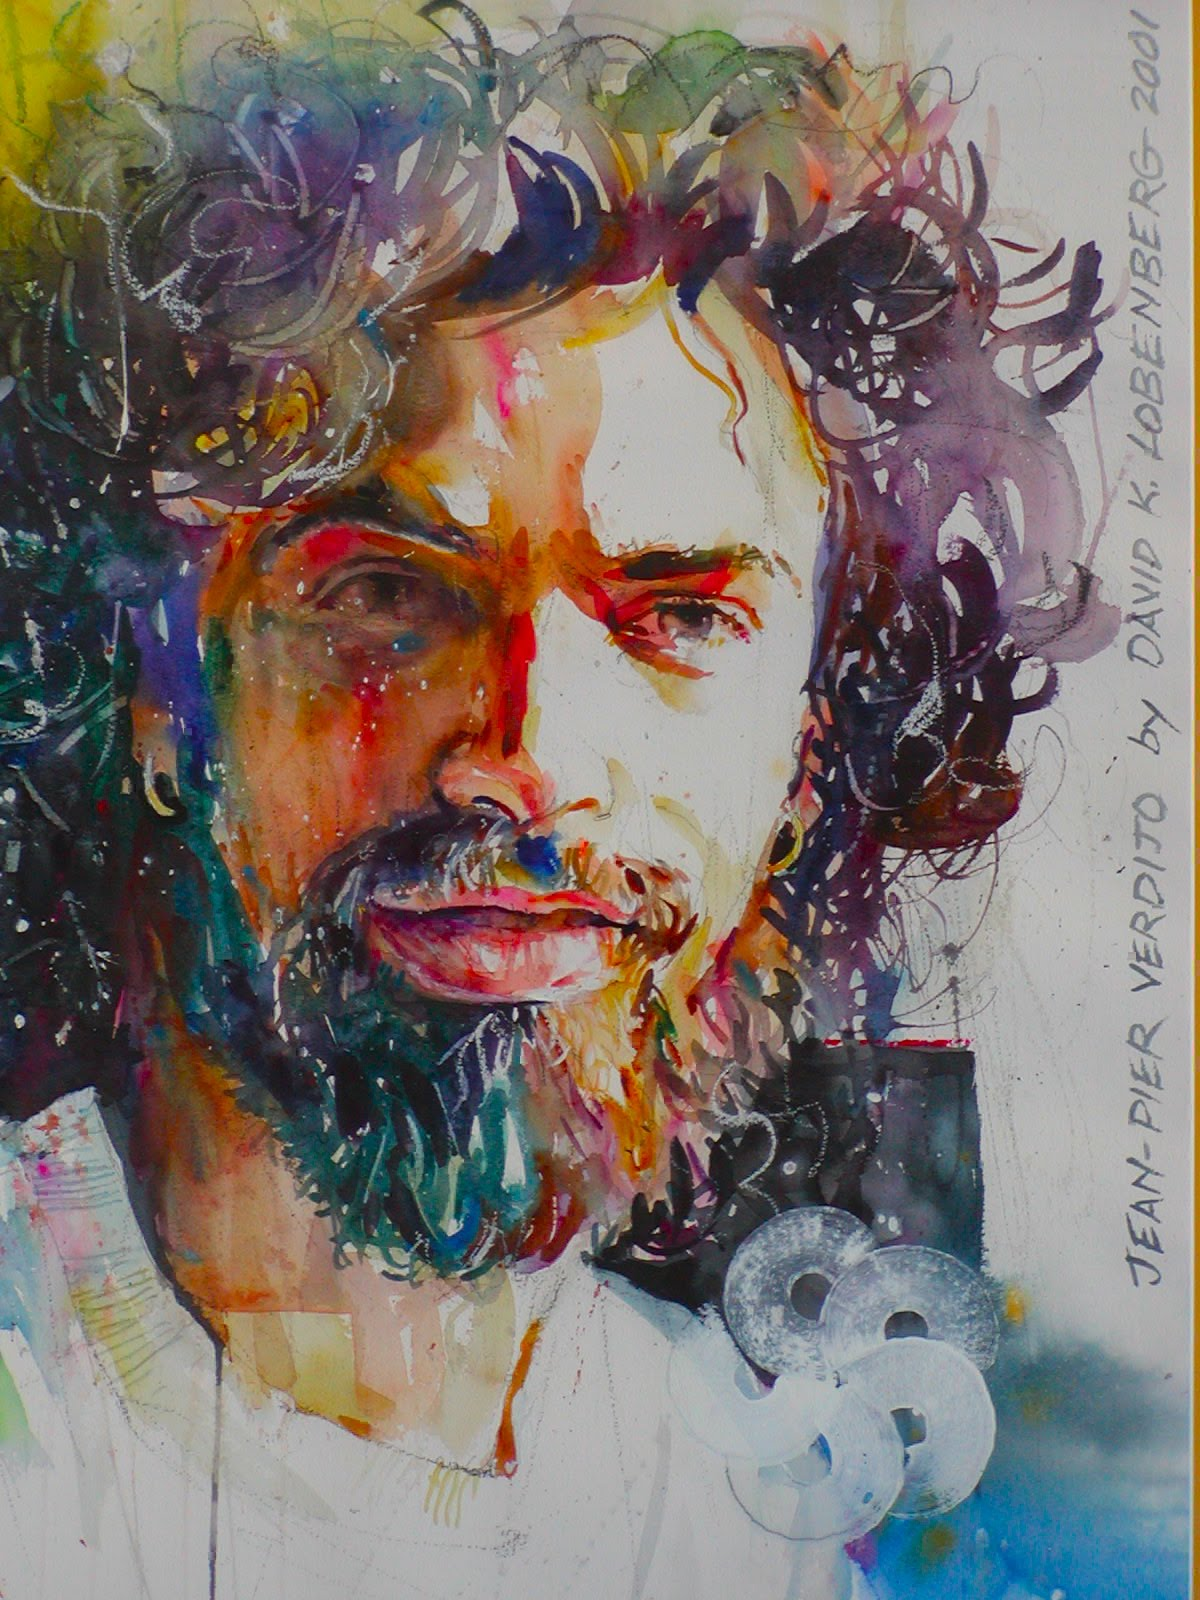 Know anyone out there that would like a lobenberg watercolor portrait im getting better at it honest